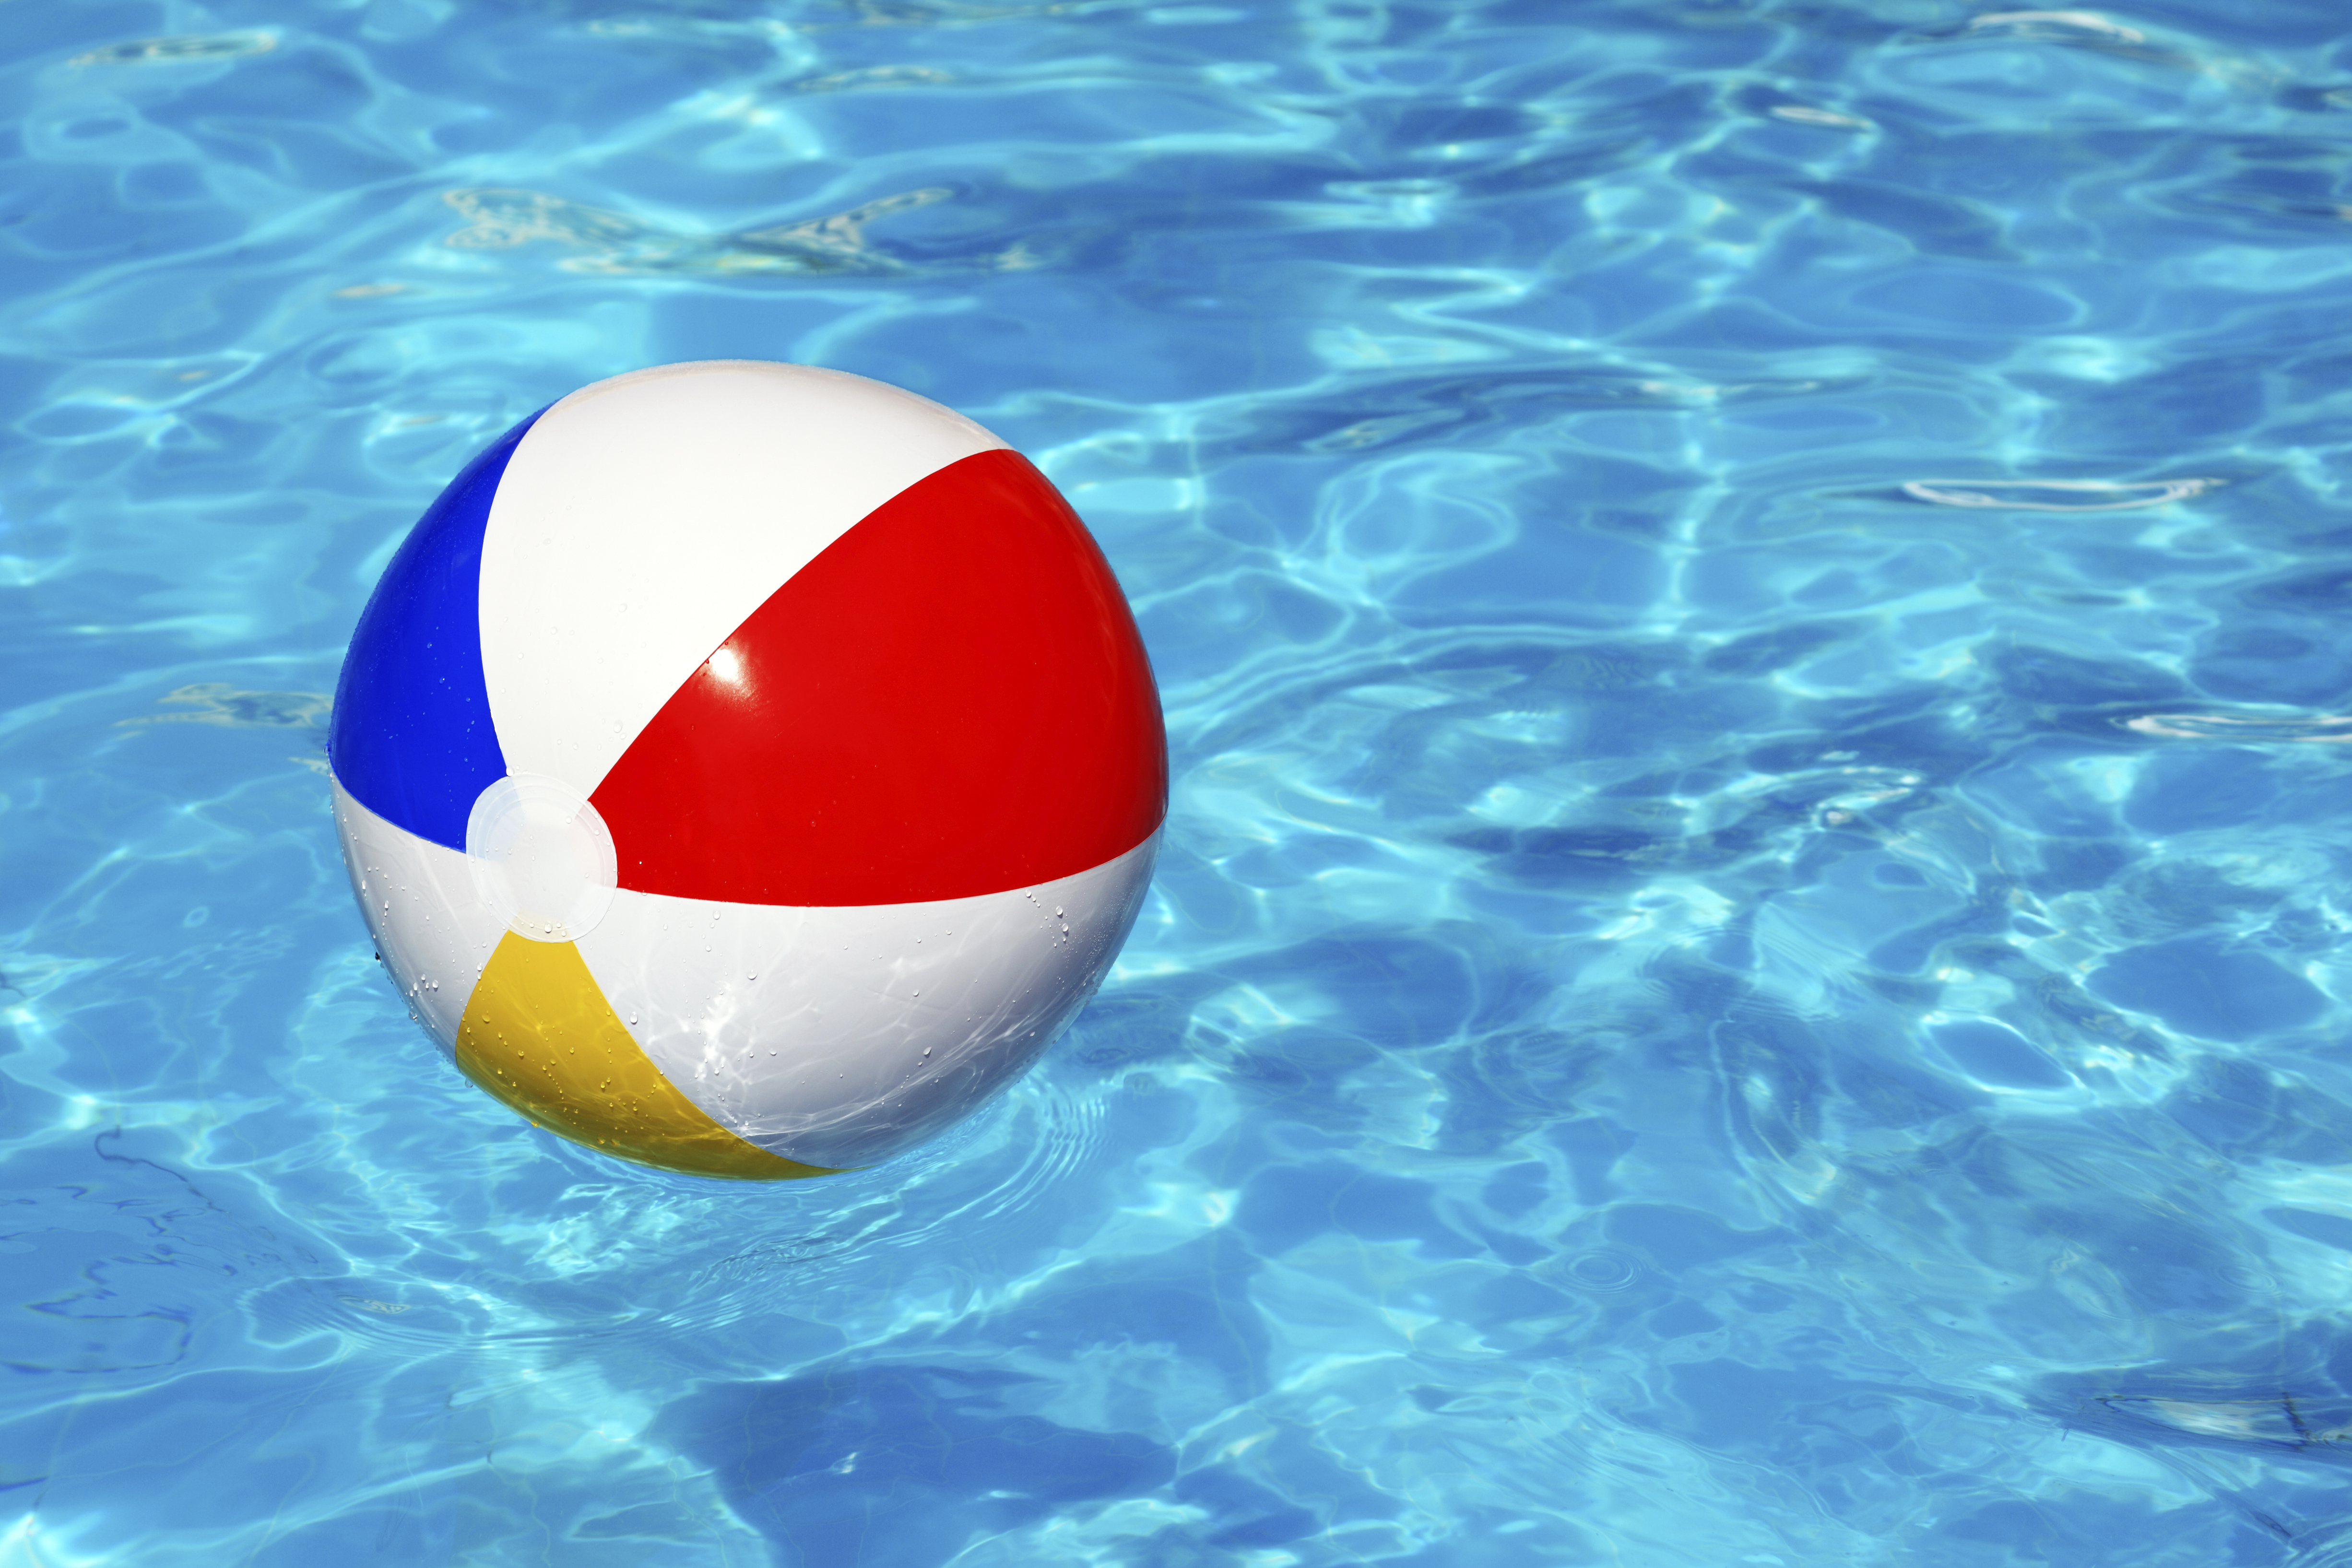 Child Proofing Your Pool To Prevent Drowning Accidents